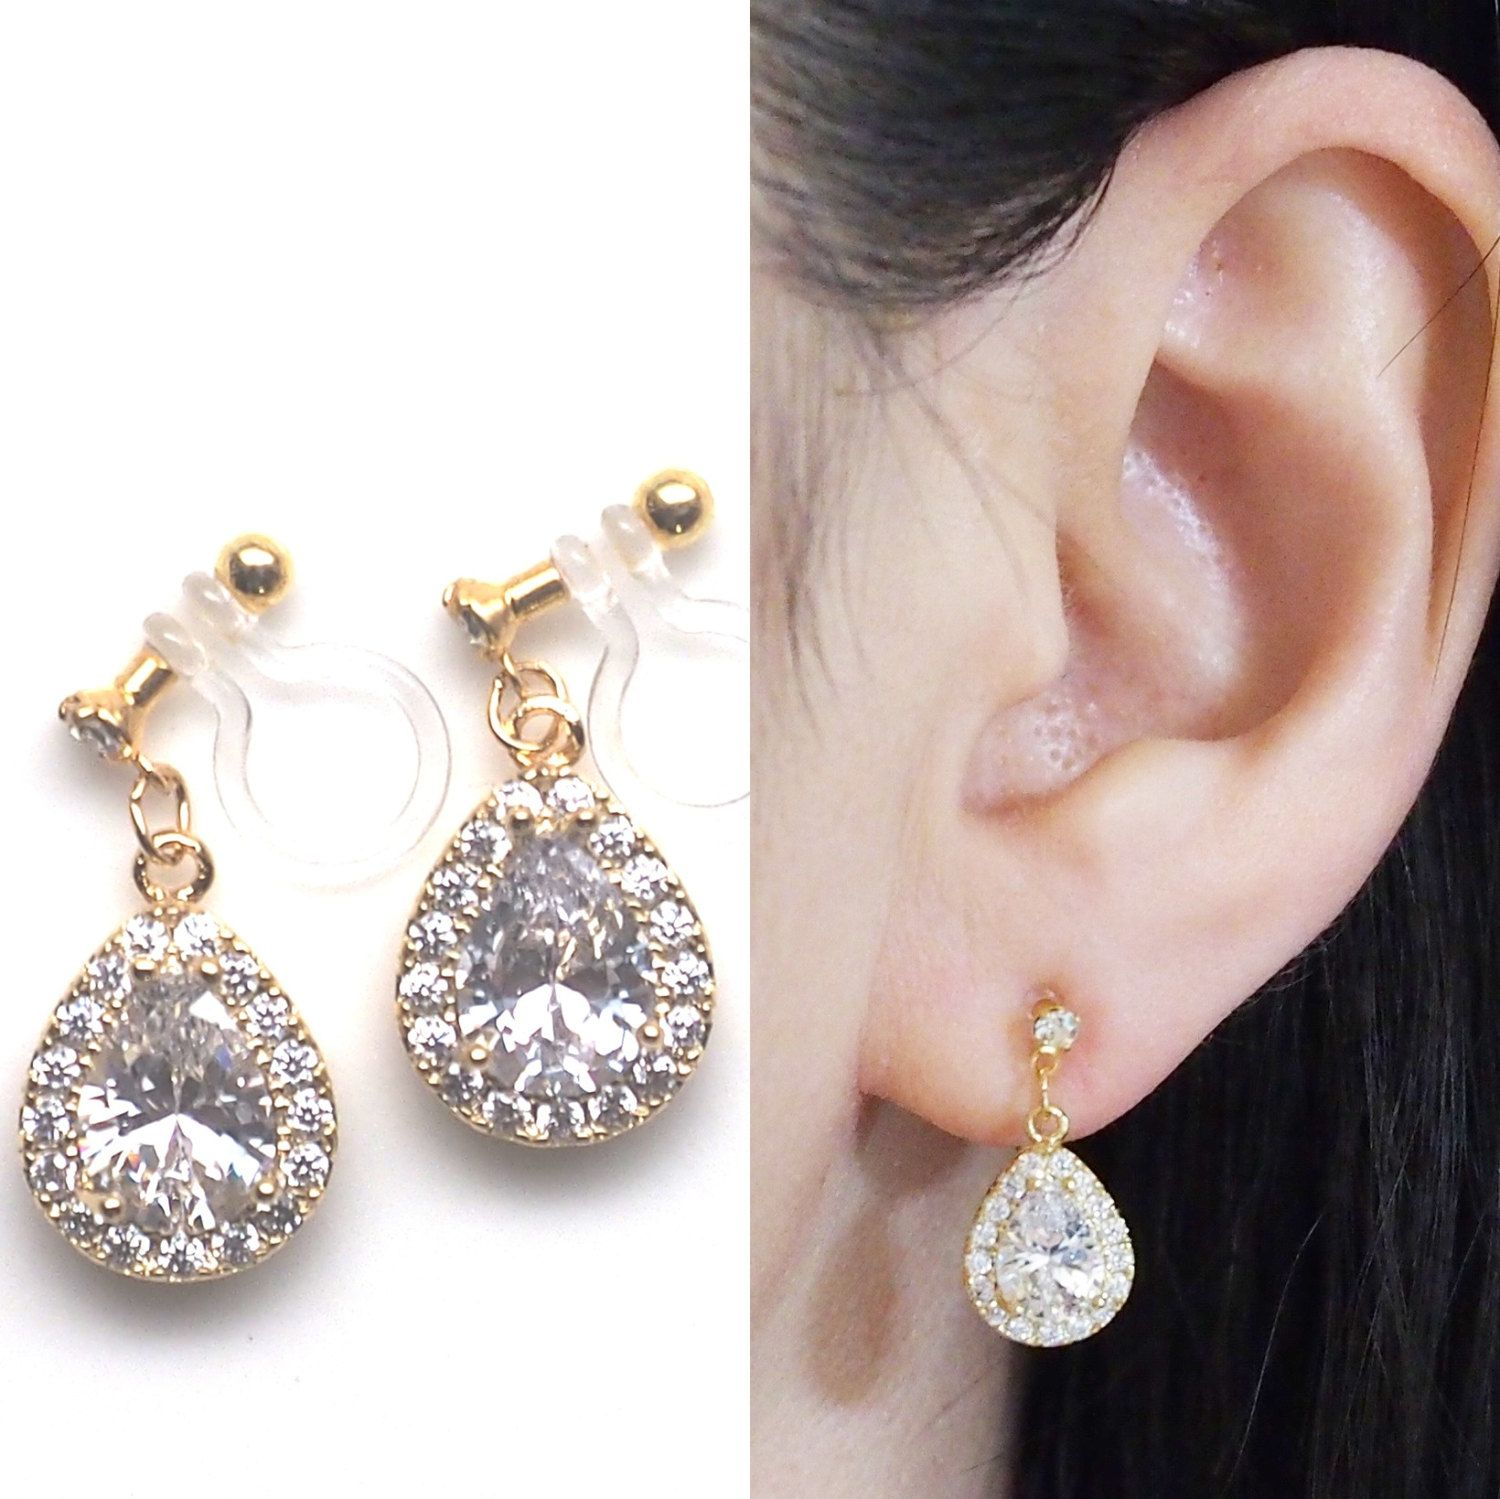 Bridal Clip-on Earrings Crystal Invisible Clip on Earrings Sparkly Cubic Zirconia Stud Clip ons 8 mm CZ Comfortable Non Pierced Earrings